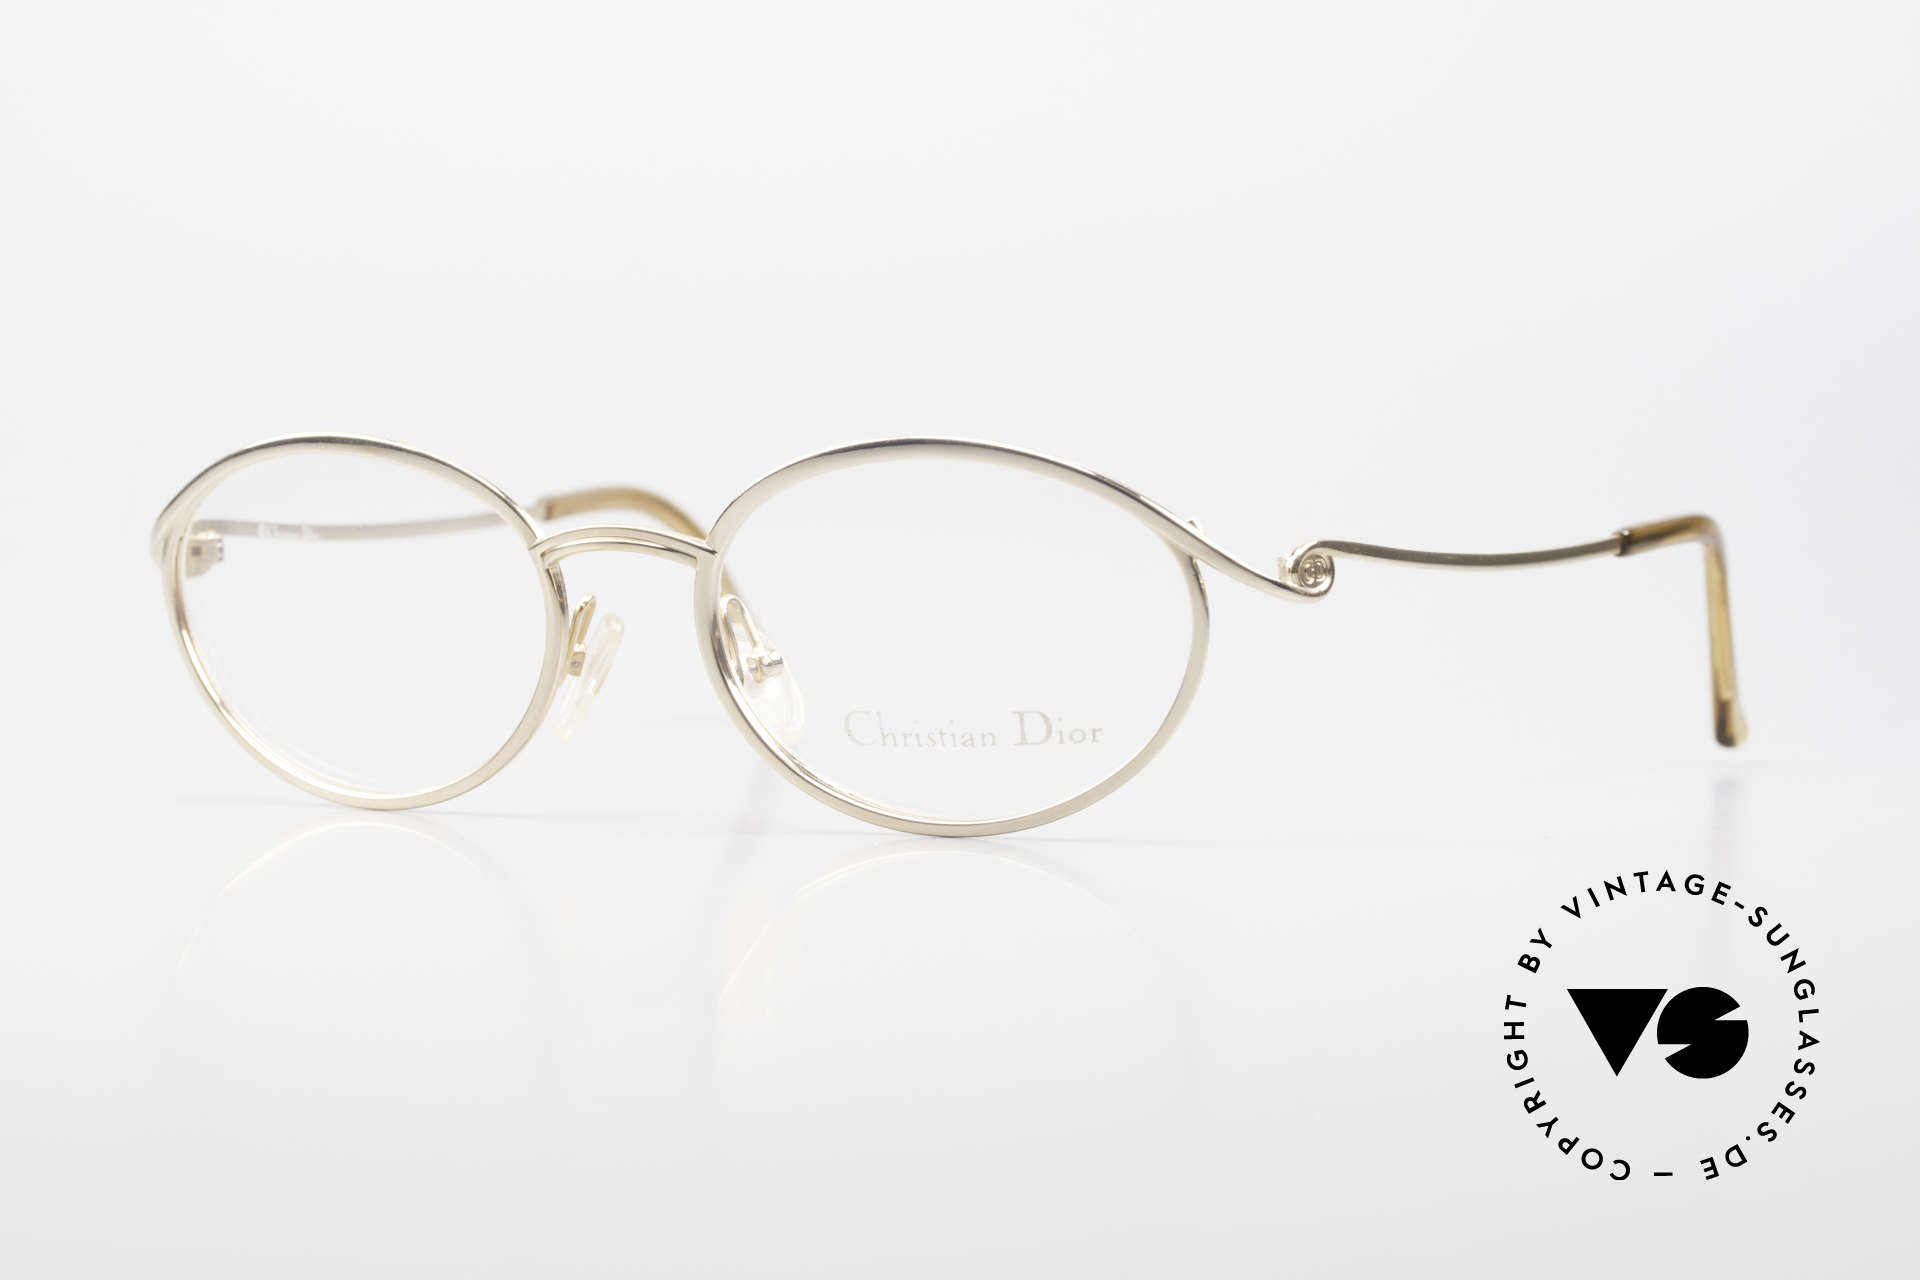 Christian Dior 2939 Ladies 90's Frame Gold Plated, beautiful 90's Chr. Dior vintage eyeglass-frame, Made for Women